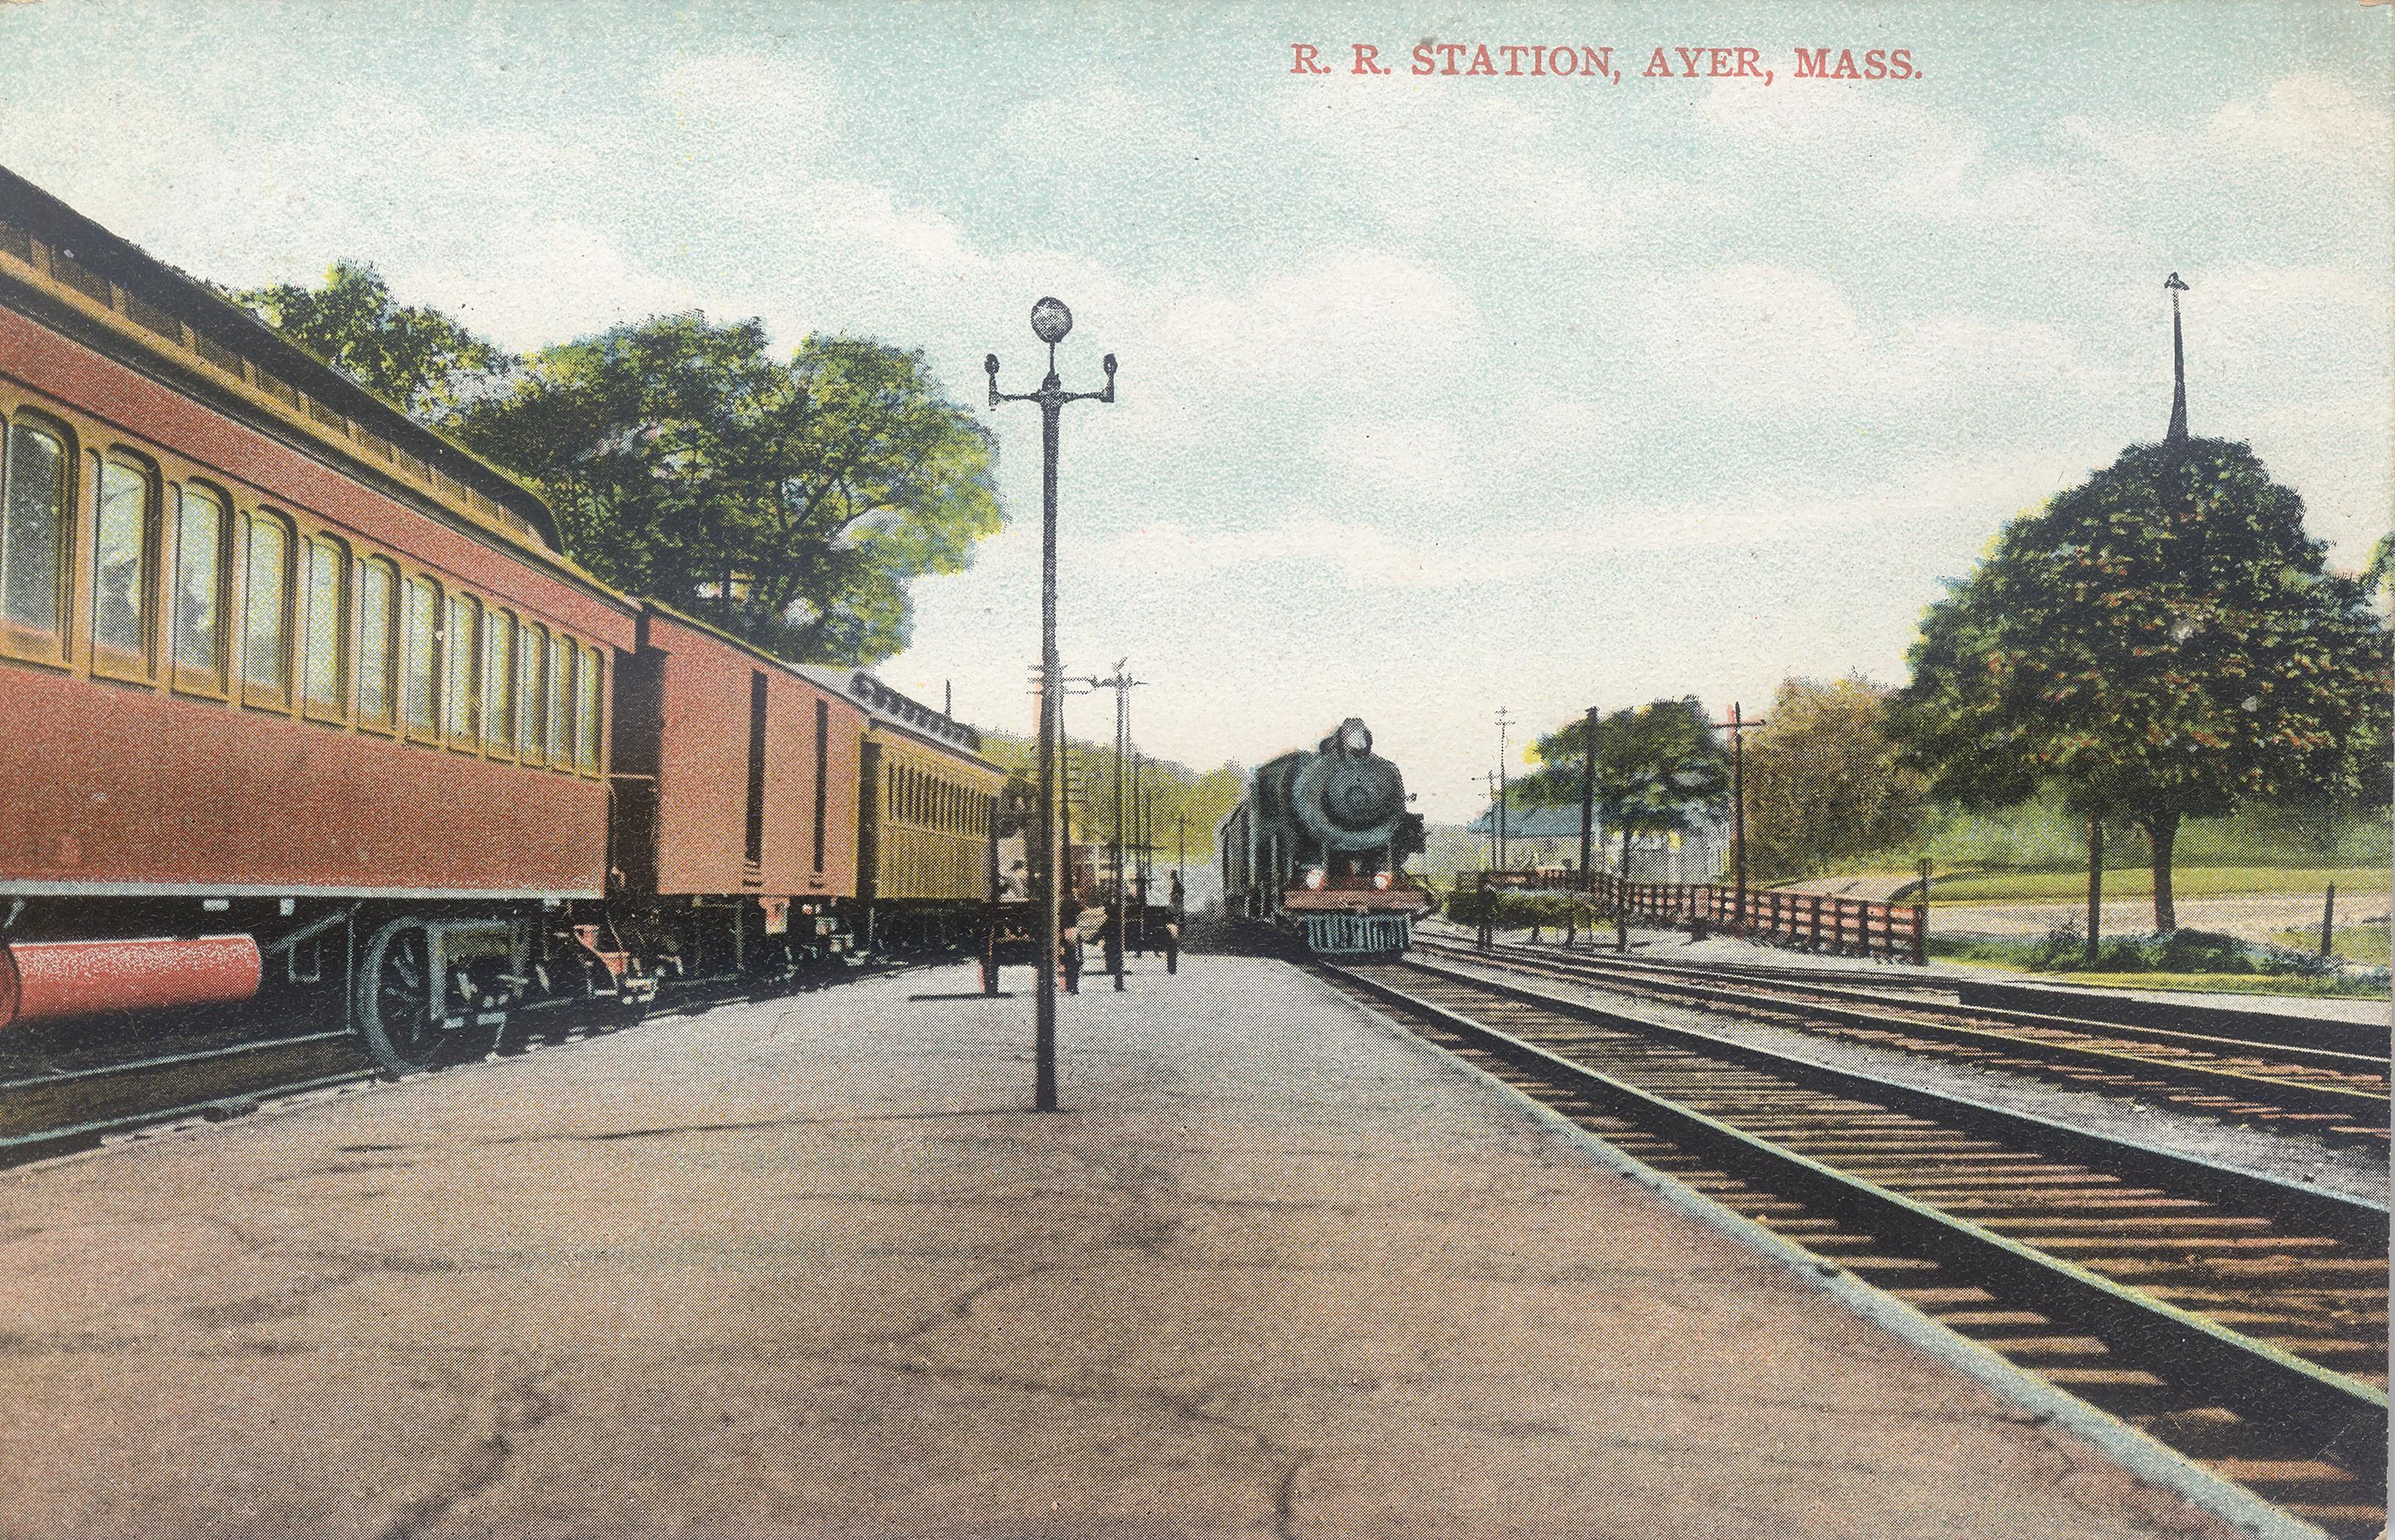 Station at Ayer, Mass.